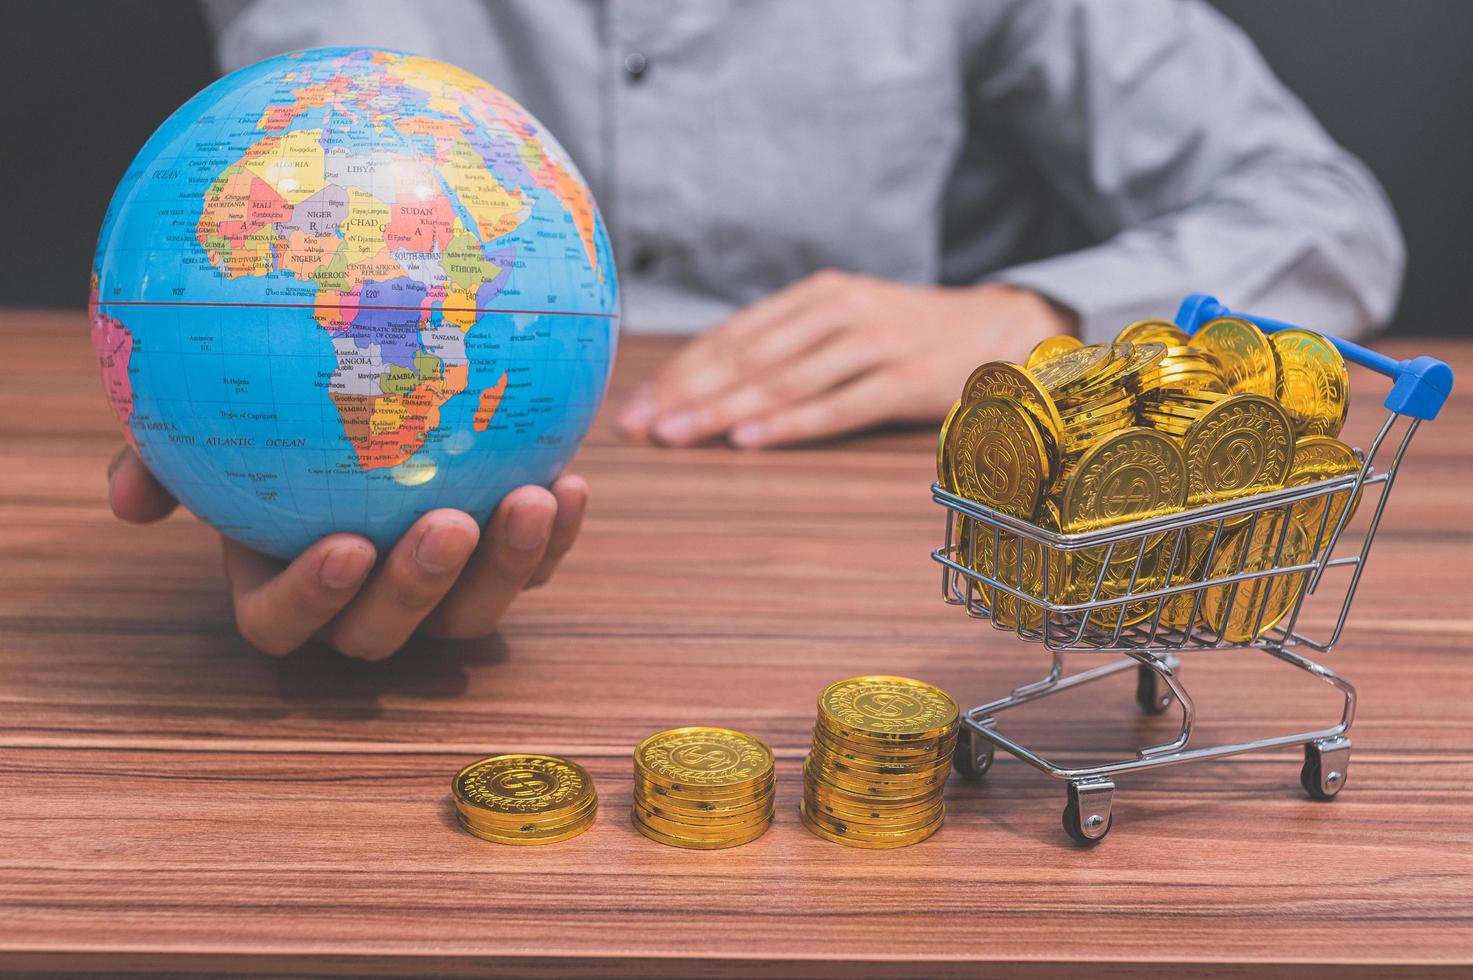 Hand holding a globe and coins on the desk photo